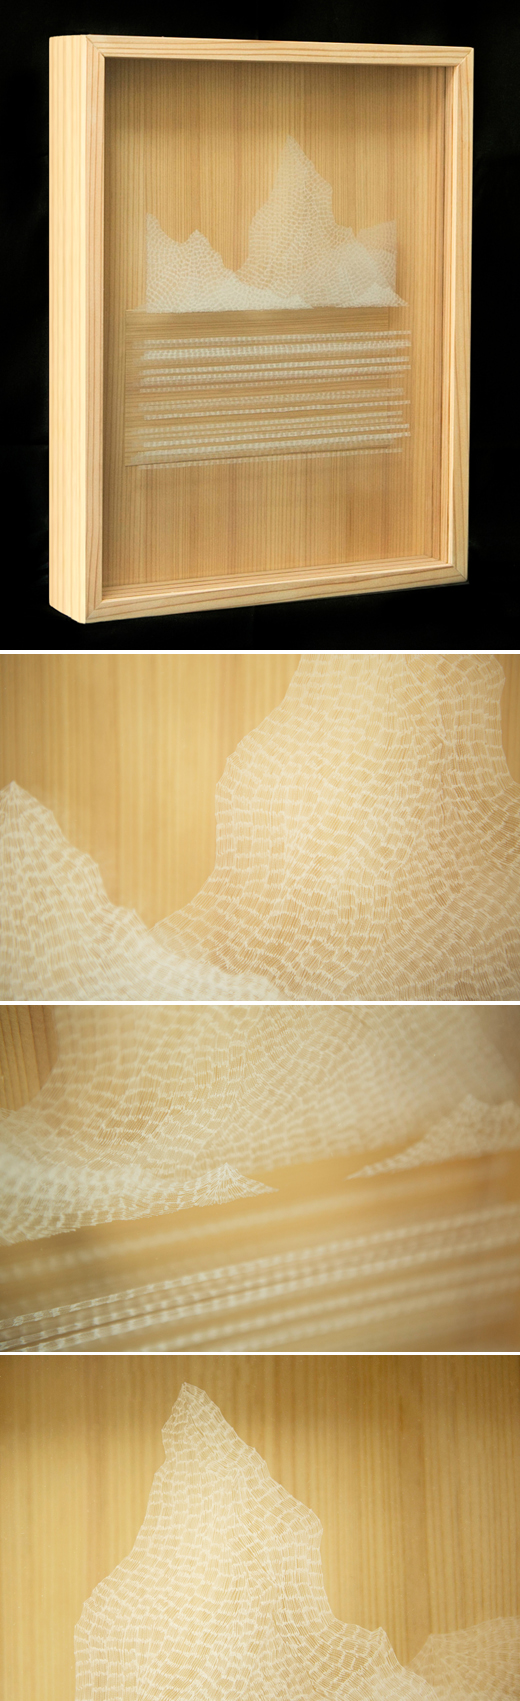 From wood -Ceder 1-